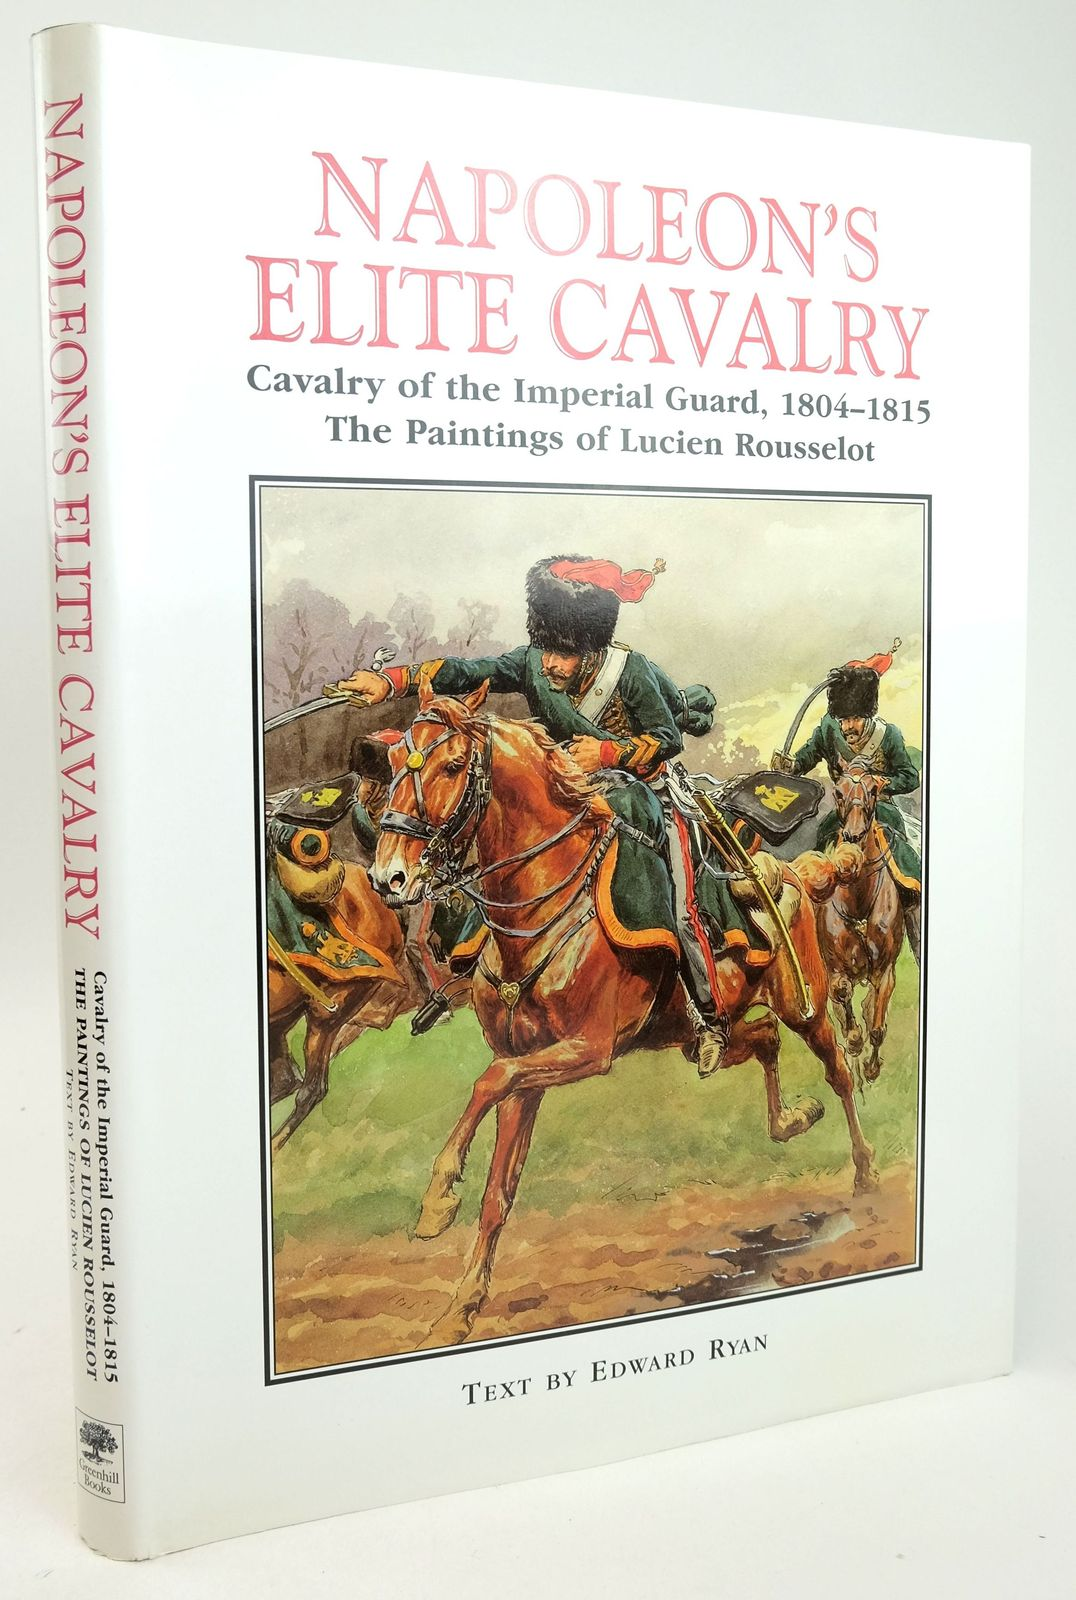 Photo of NAPOLEON'S ELITE CAVALRY written by Ryan, Edward illustrated by Rousselot, Lucien published by Greenhill Books, Stackpole Books (STOCK CODE: 1819980)  for sale by Stella & Rose's Books